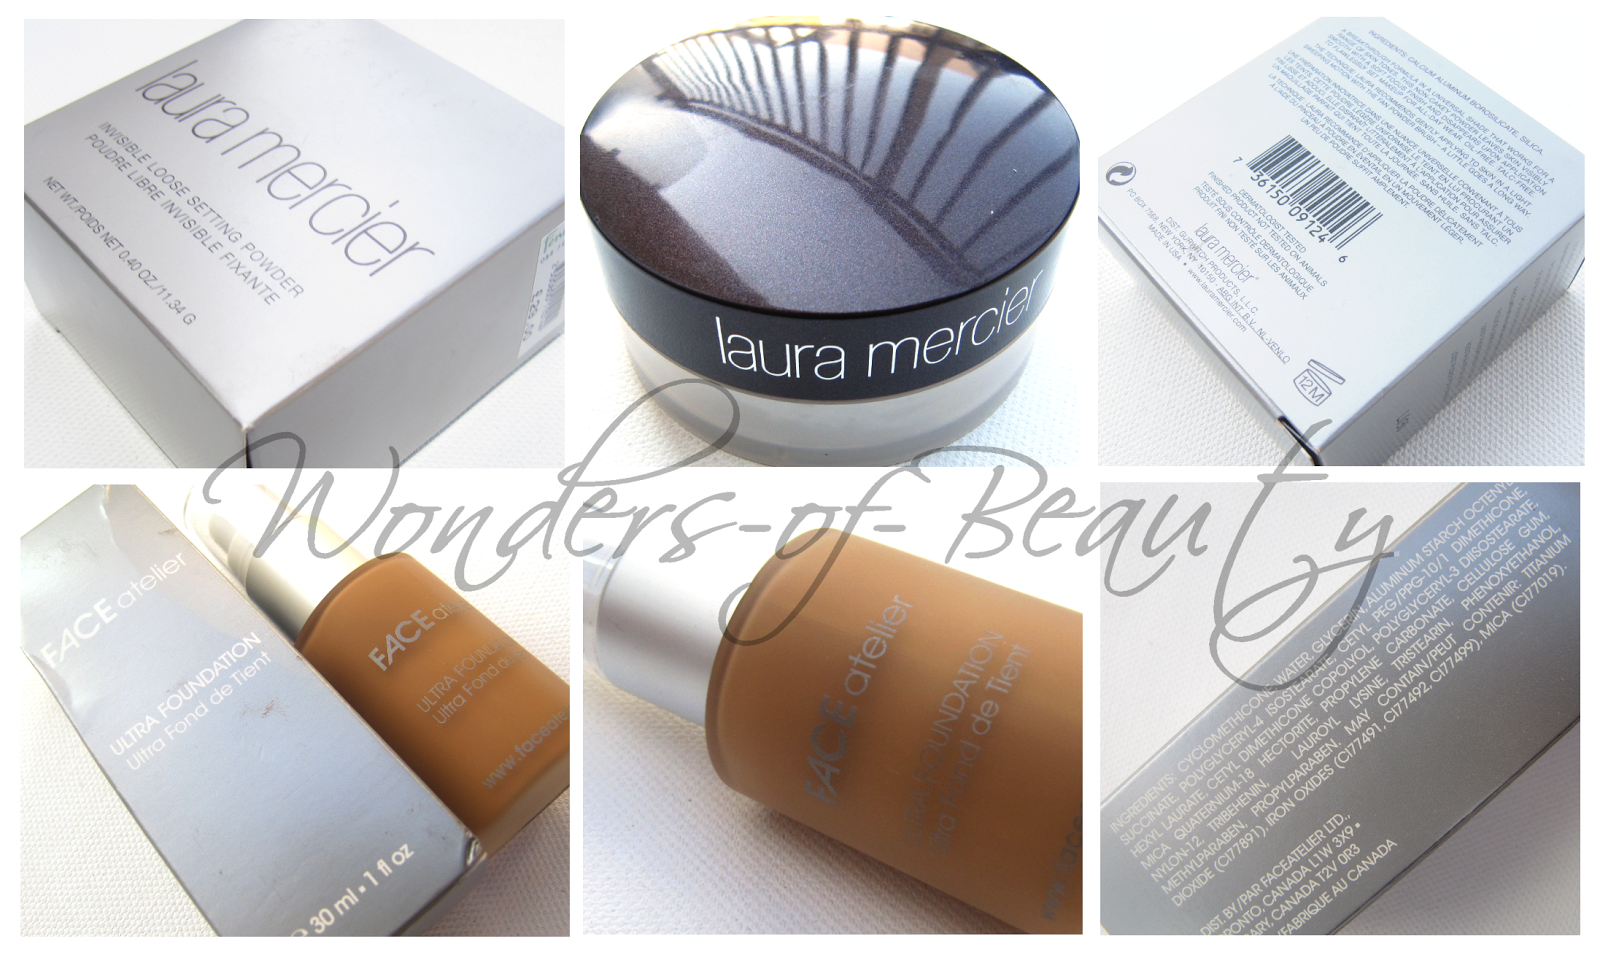 What's New: Laura Mercier Invisible Loose Setting Powder and Face Atelier